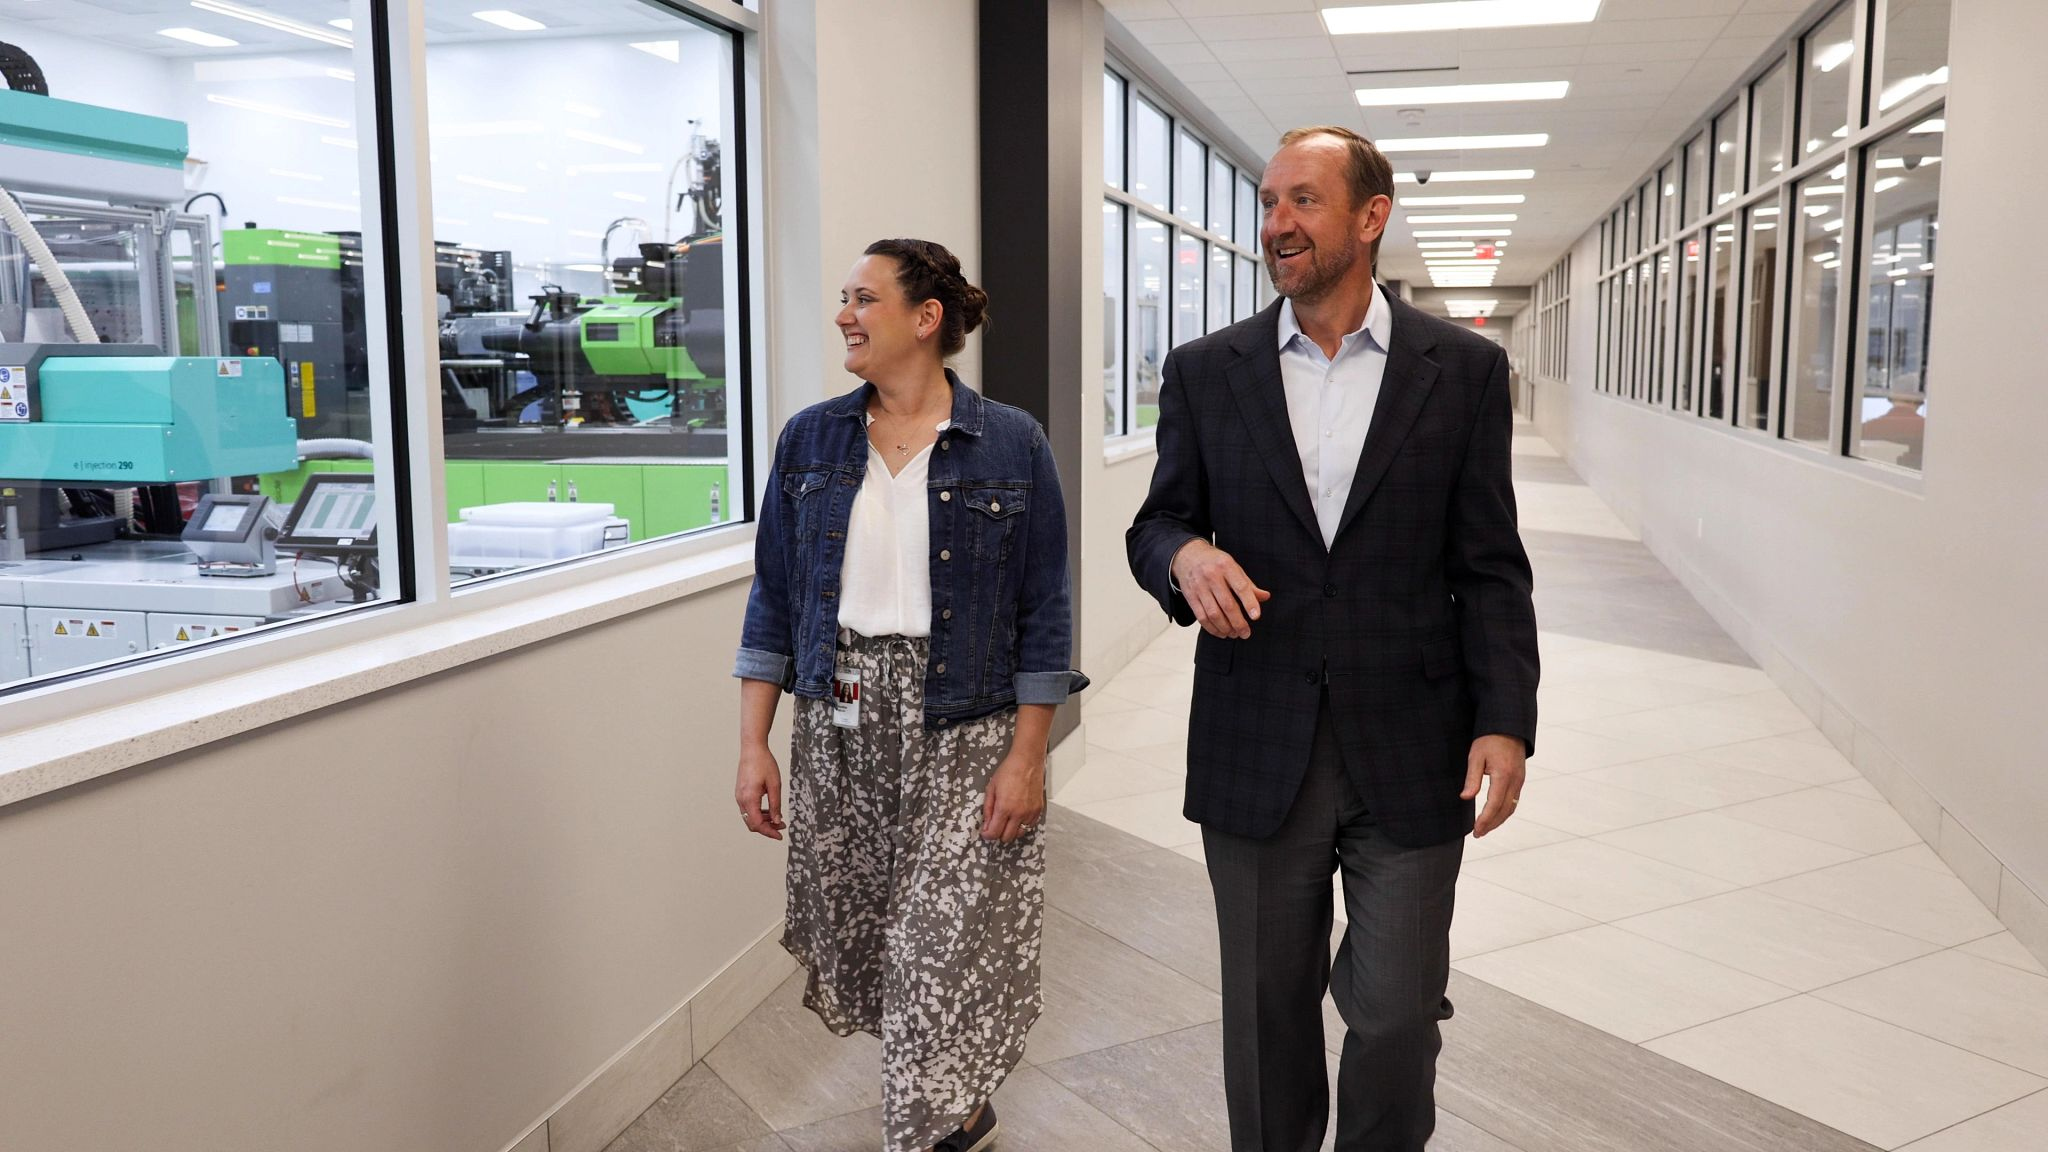 An image of two people walking in the Phillips-Medisize, St. Croix Meadows manufacturing facility